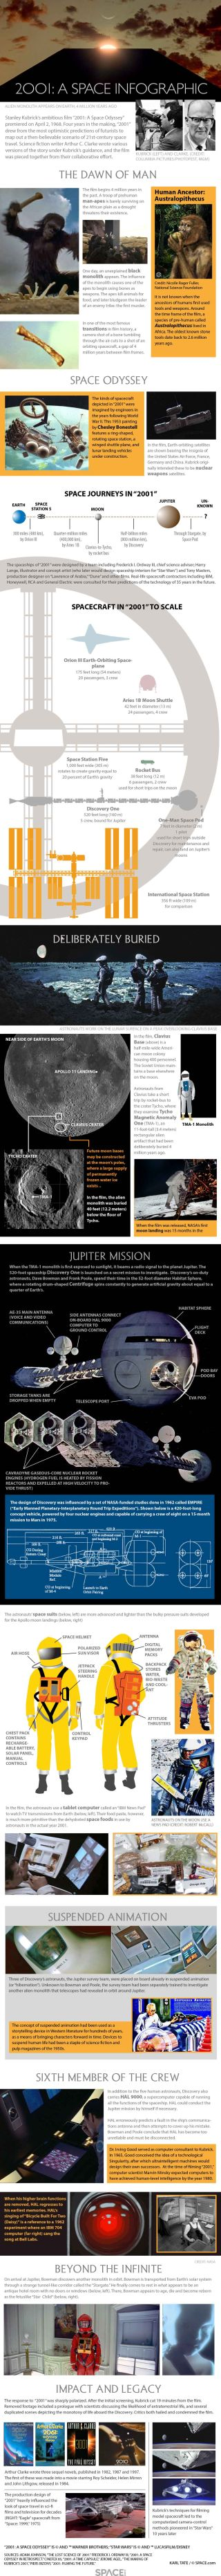 "Infographic: ""2001: A Space Odyssey's"" depiction of space travel and how it differs from reality"